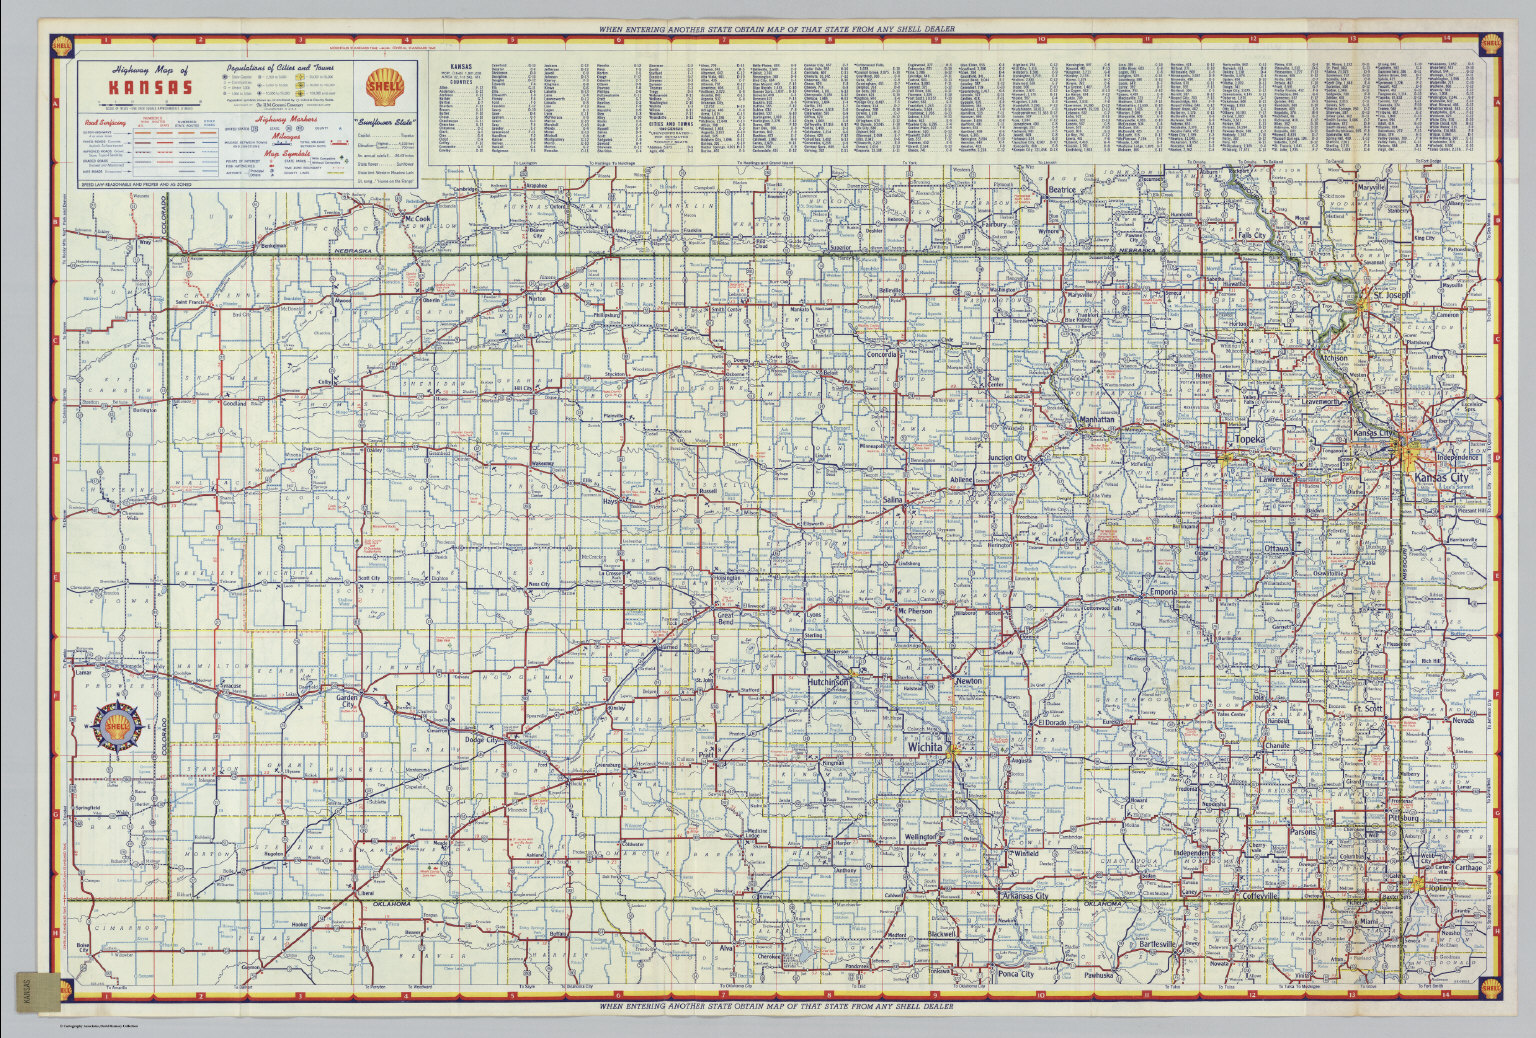 Shell Highway Map Of Kansas David Rumsey Historical Map Collection - Map of kansas